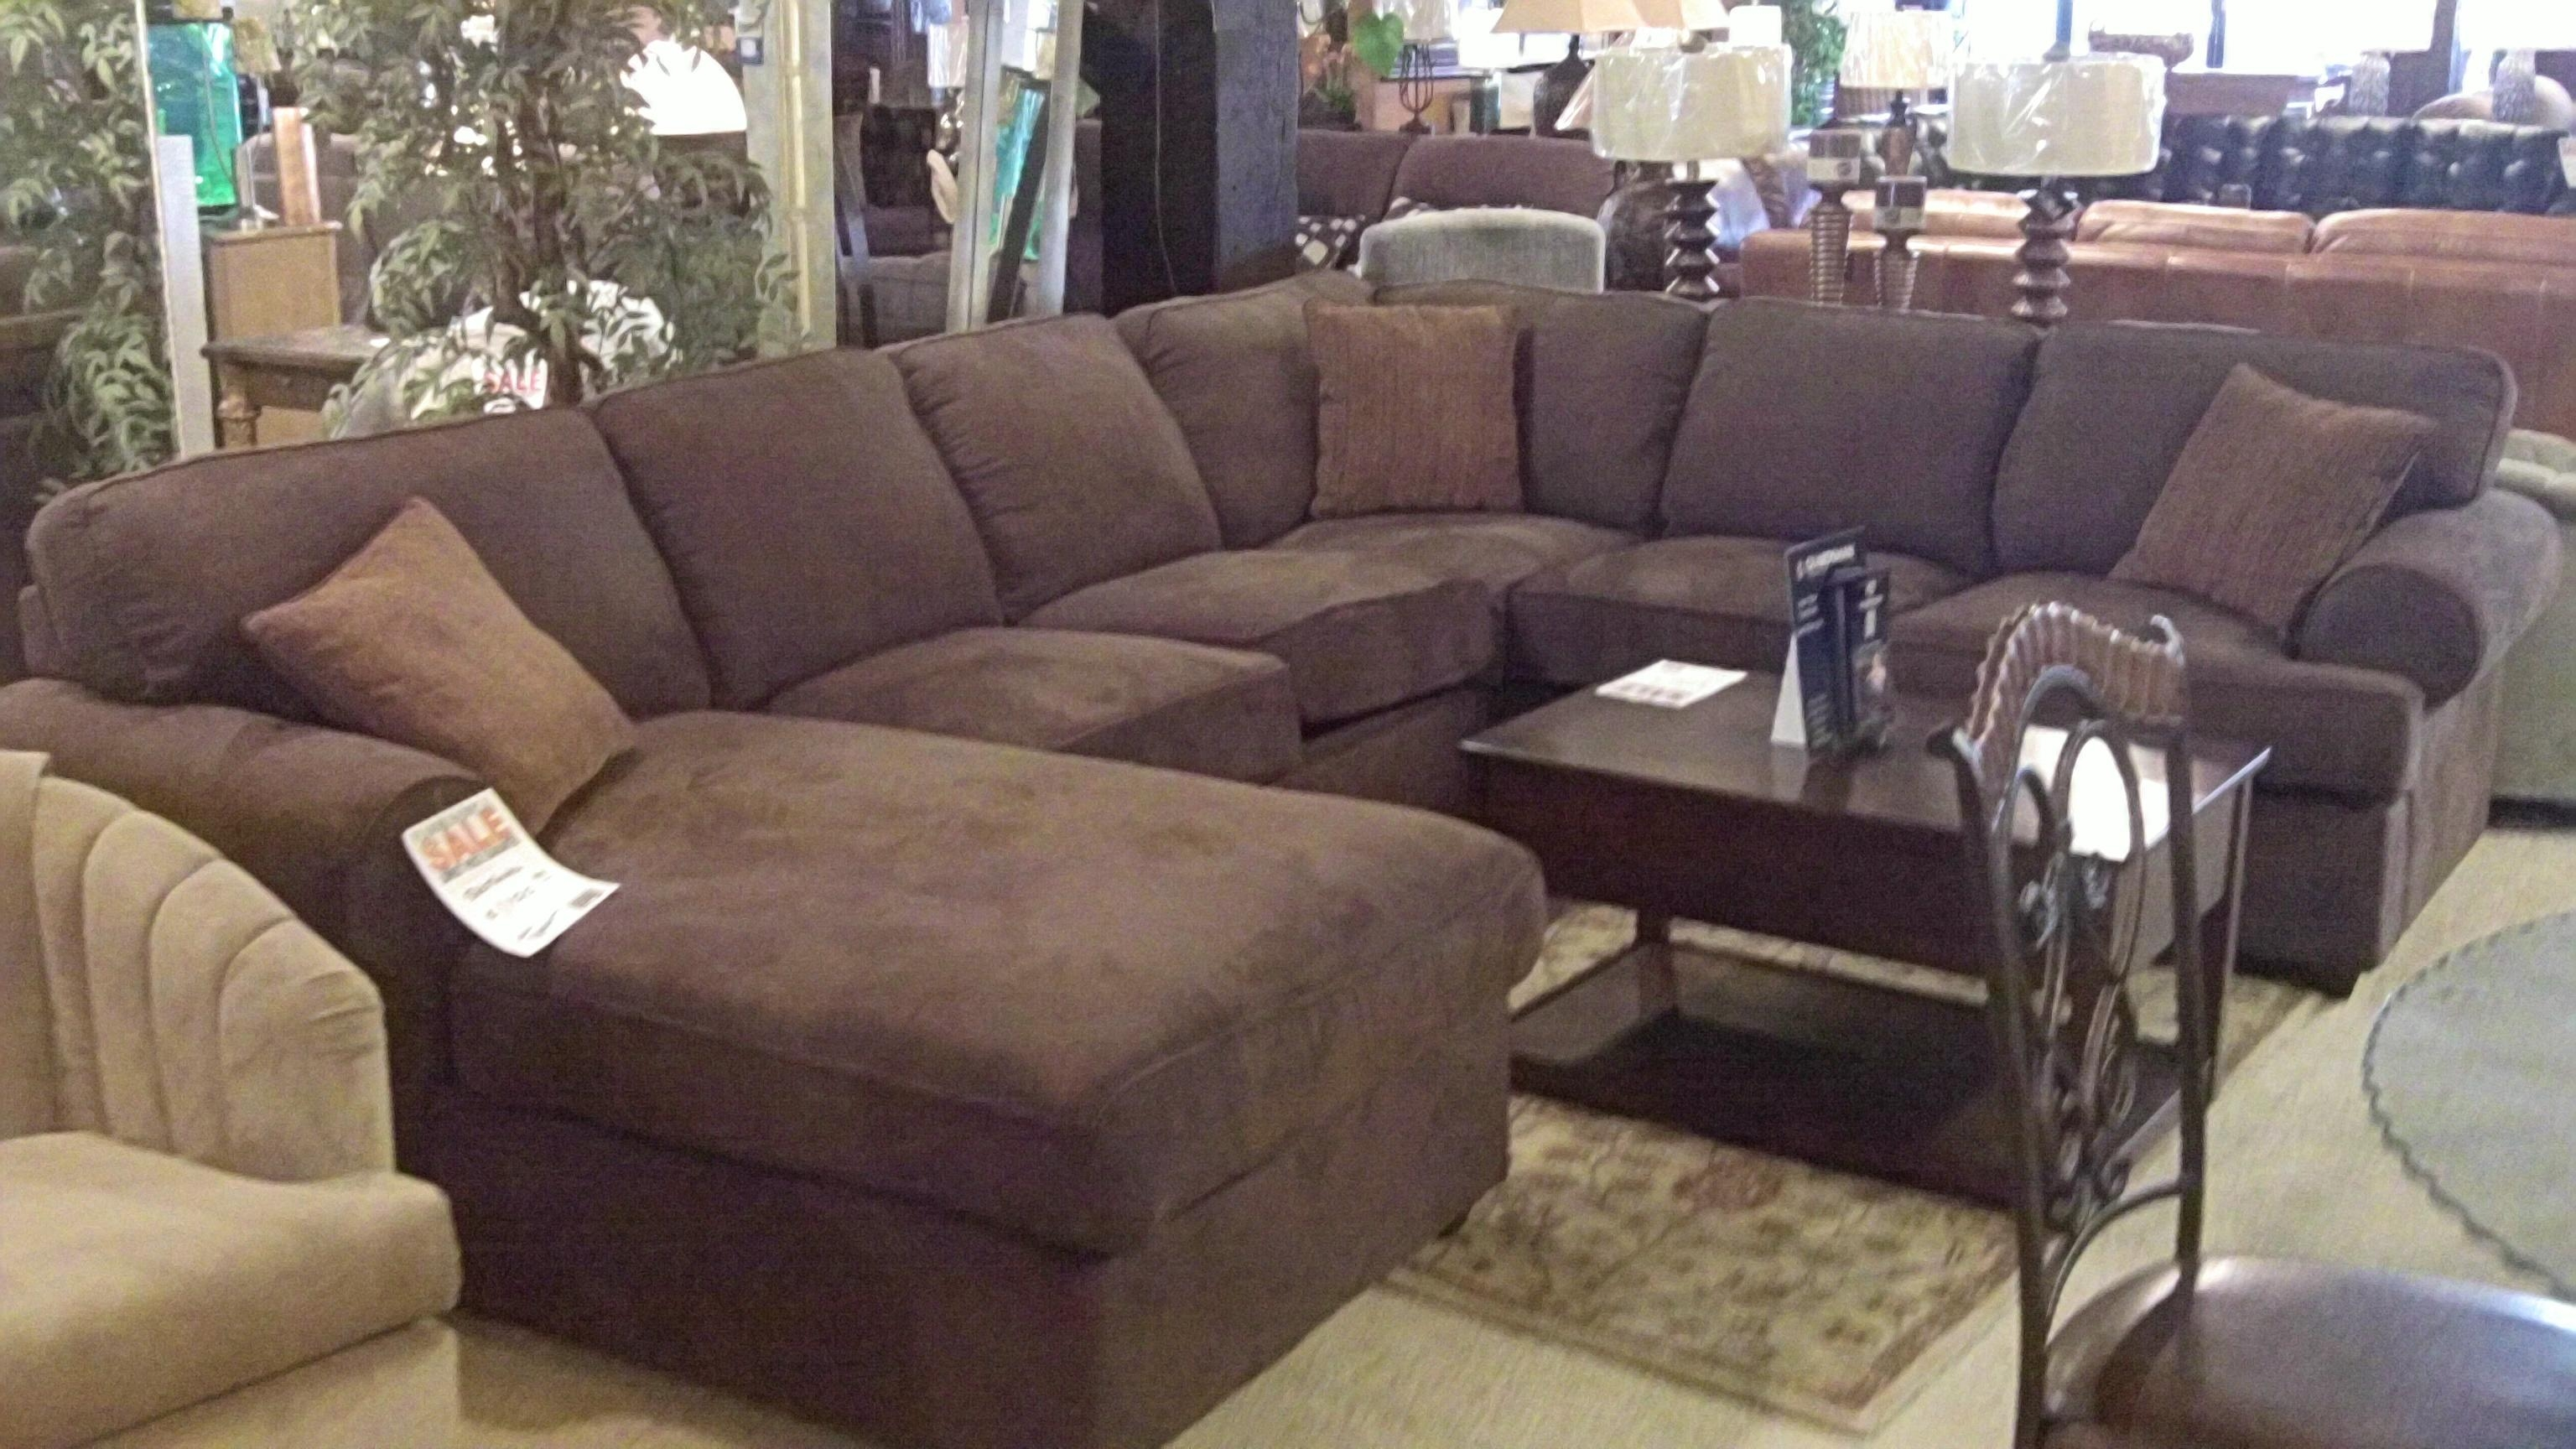 20 collection of sectional with ottoman and chaise sofa ideas Extra large living room chairs